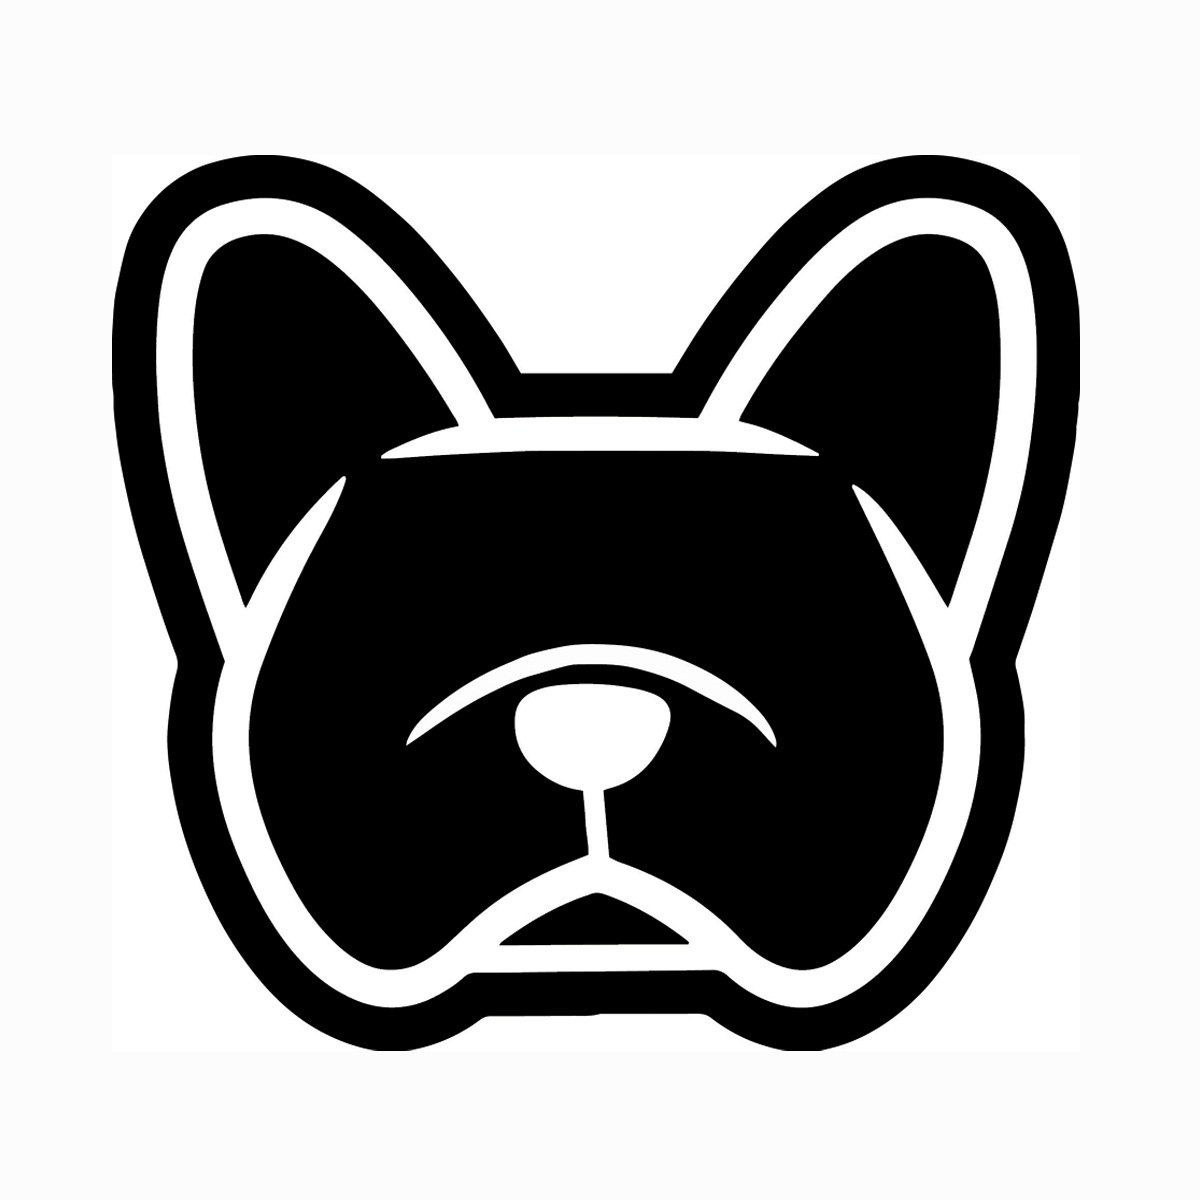 French Bulldog Frenchie Car Vinyl Decal Stickers You Choose Color Smooshface United Flat Face French Bulldog Art French Bulldog Cartoon Dog Logo Design